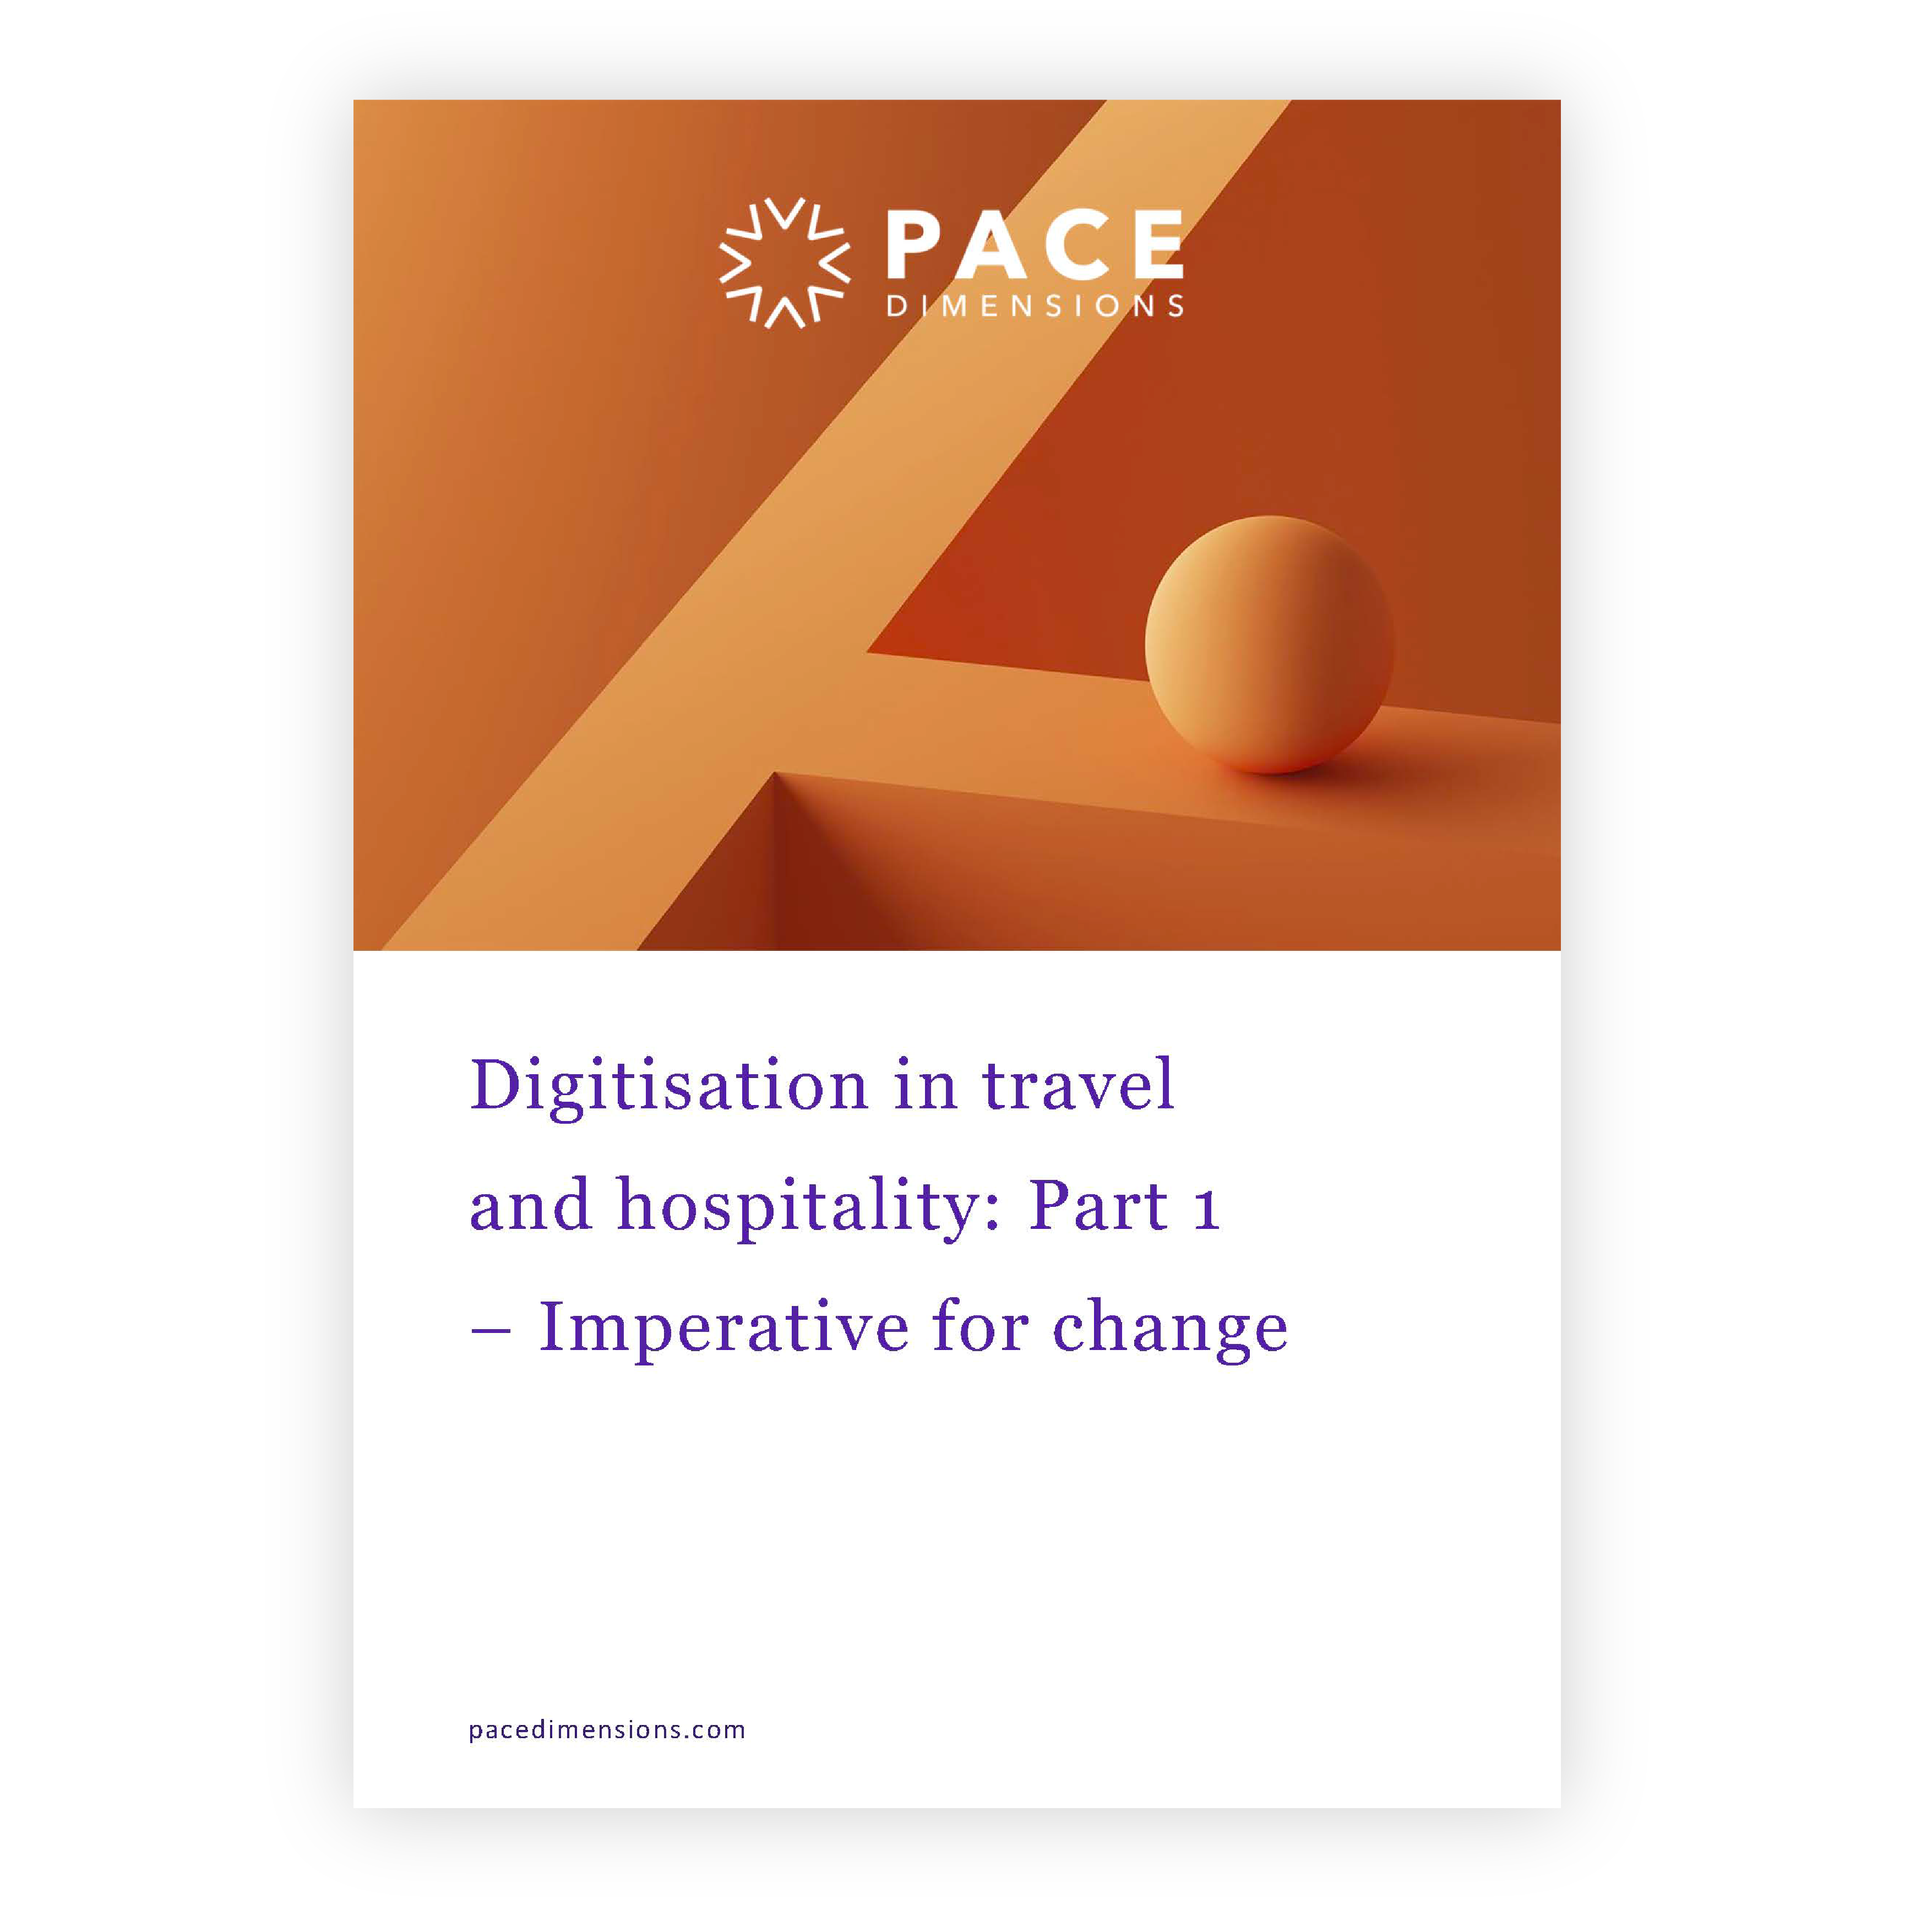 digitisation in travel and hospitality: part 1